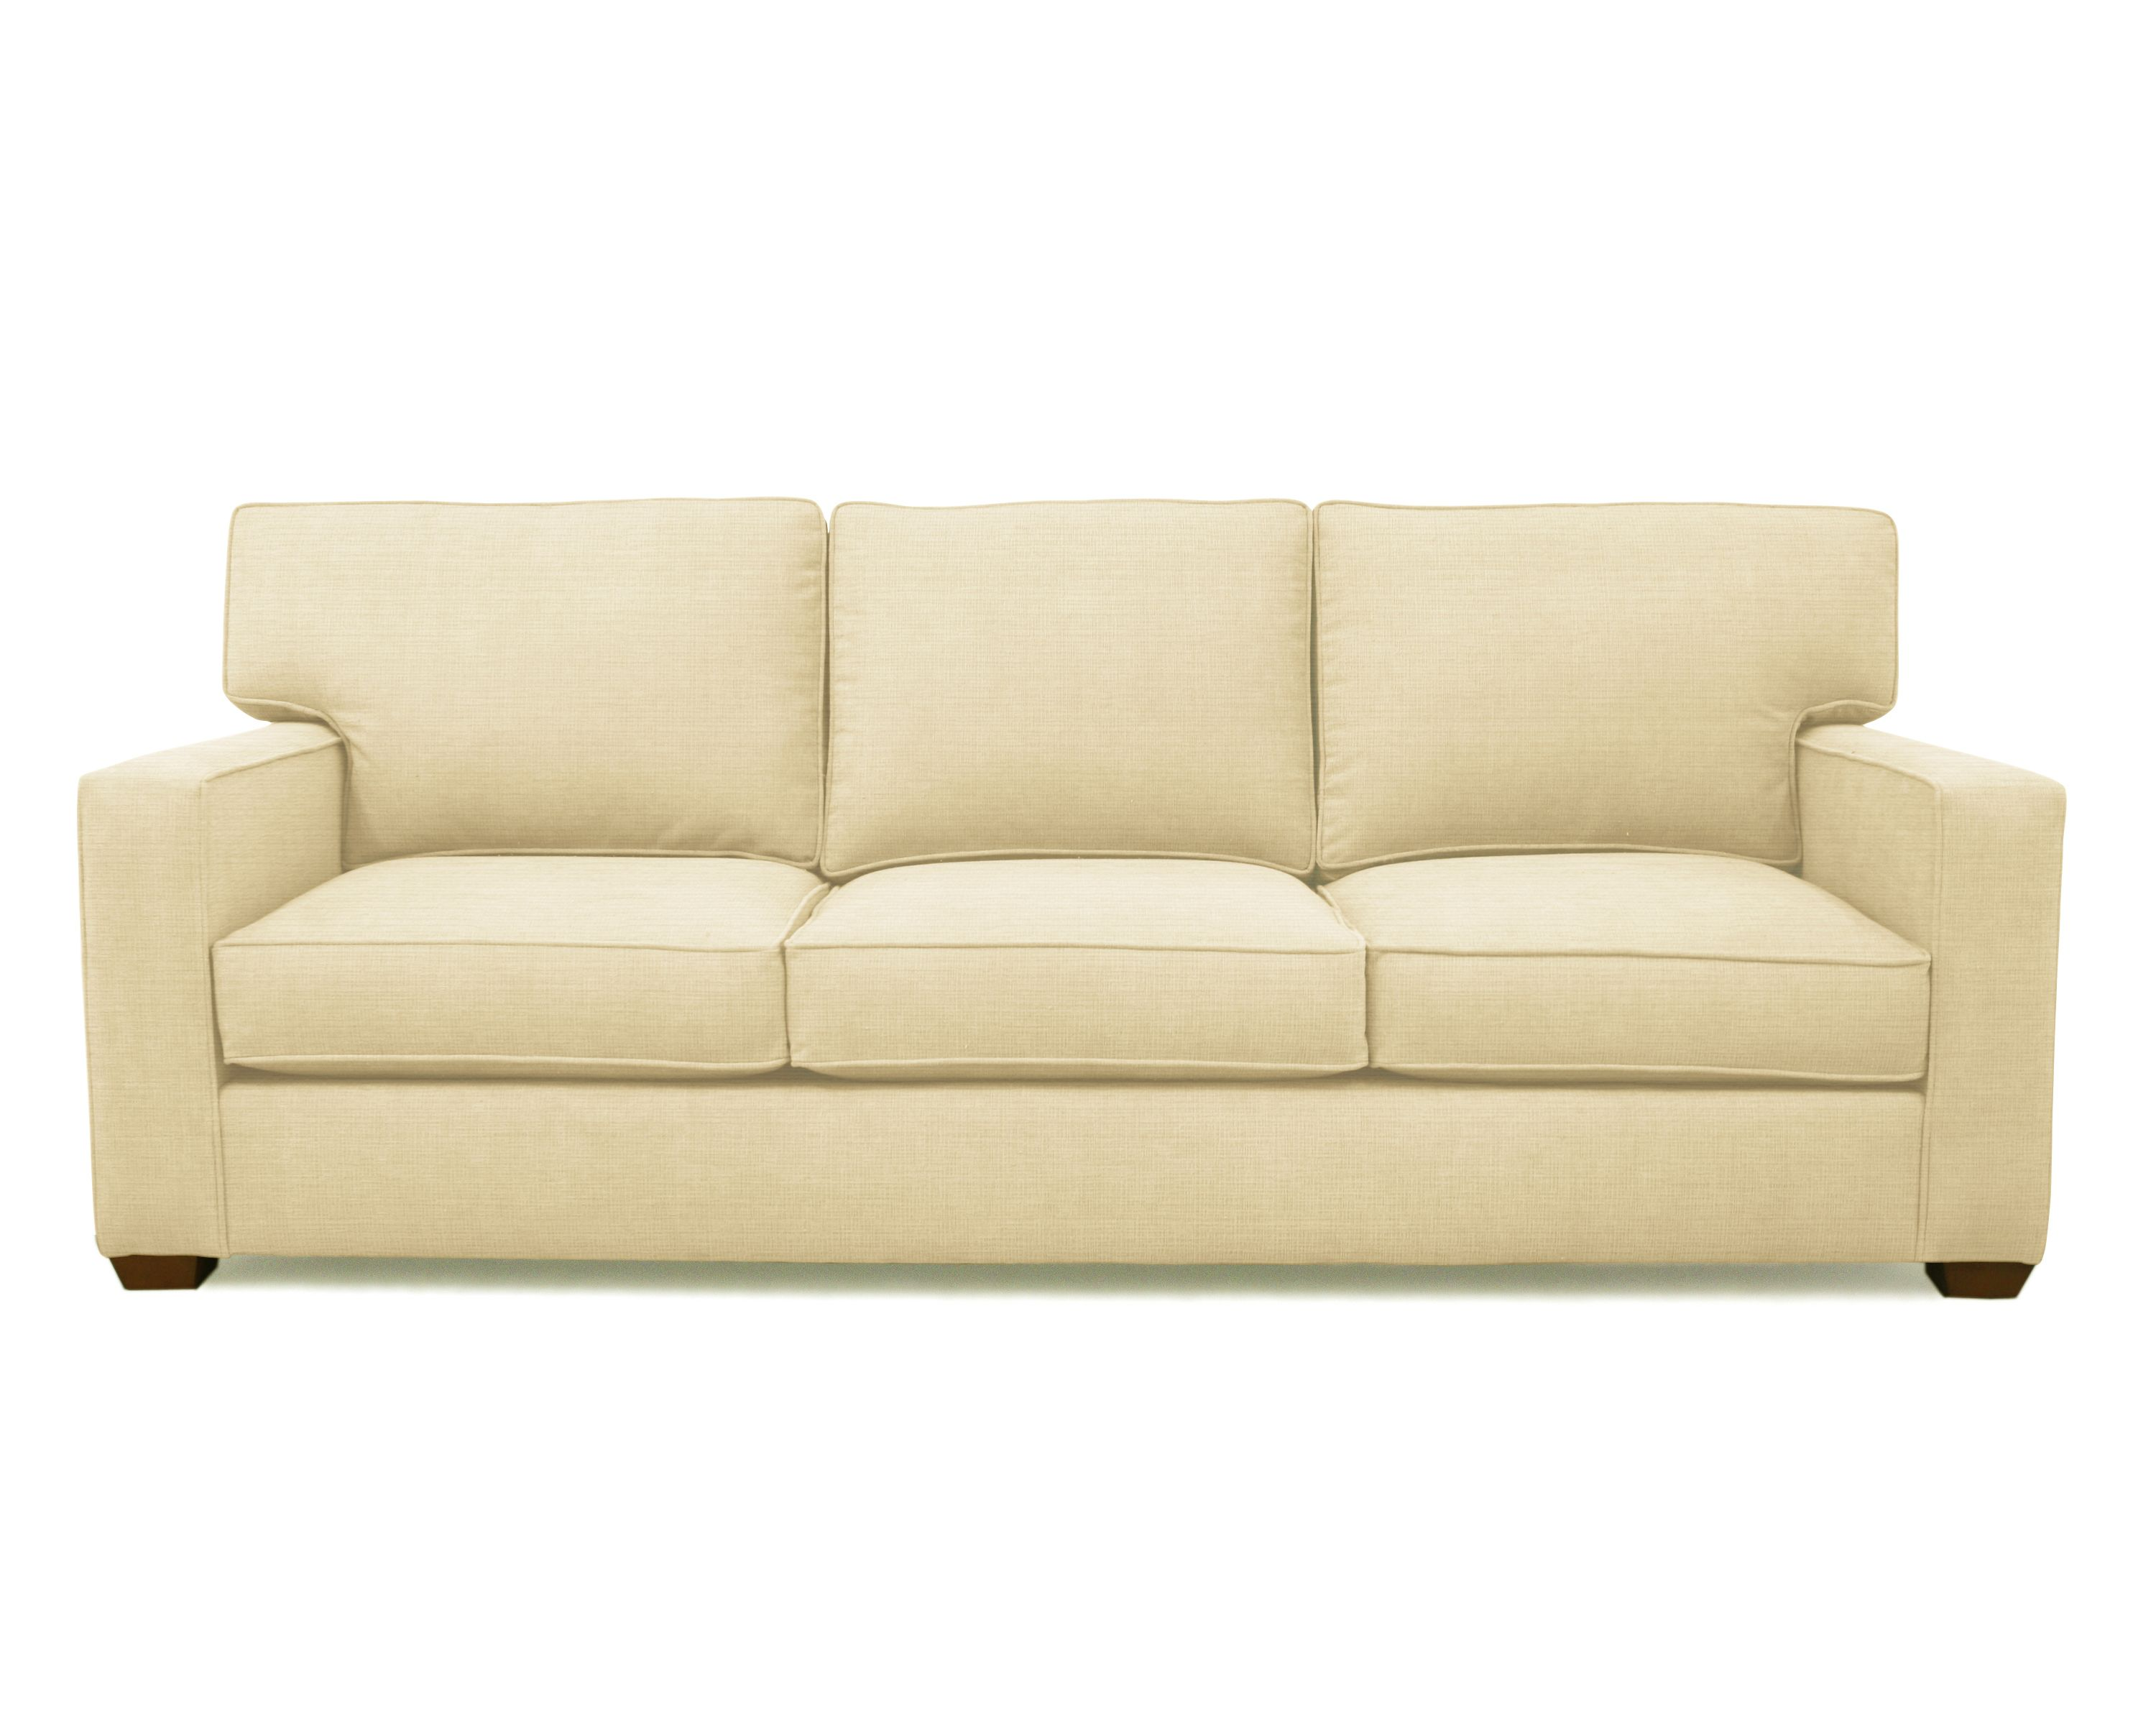 Find A Crypton Fabric Retailer Near You Shop Locally Or Online Crypton Crypton Fabric Sofa Custom Couches